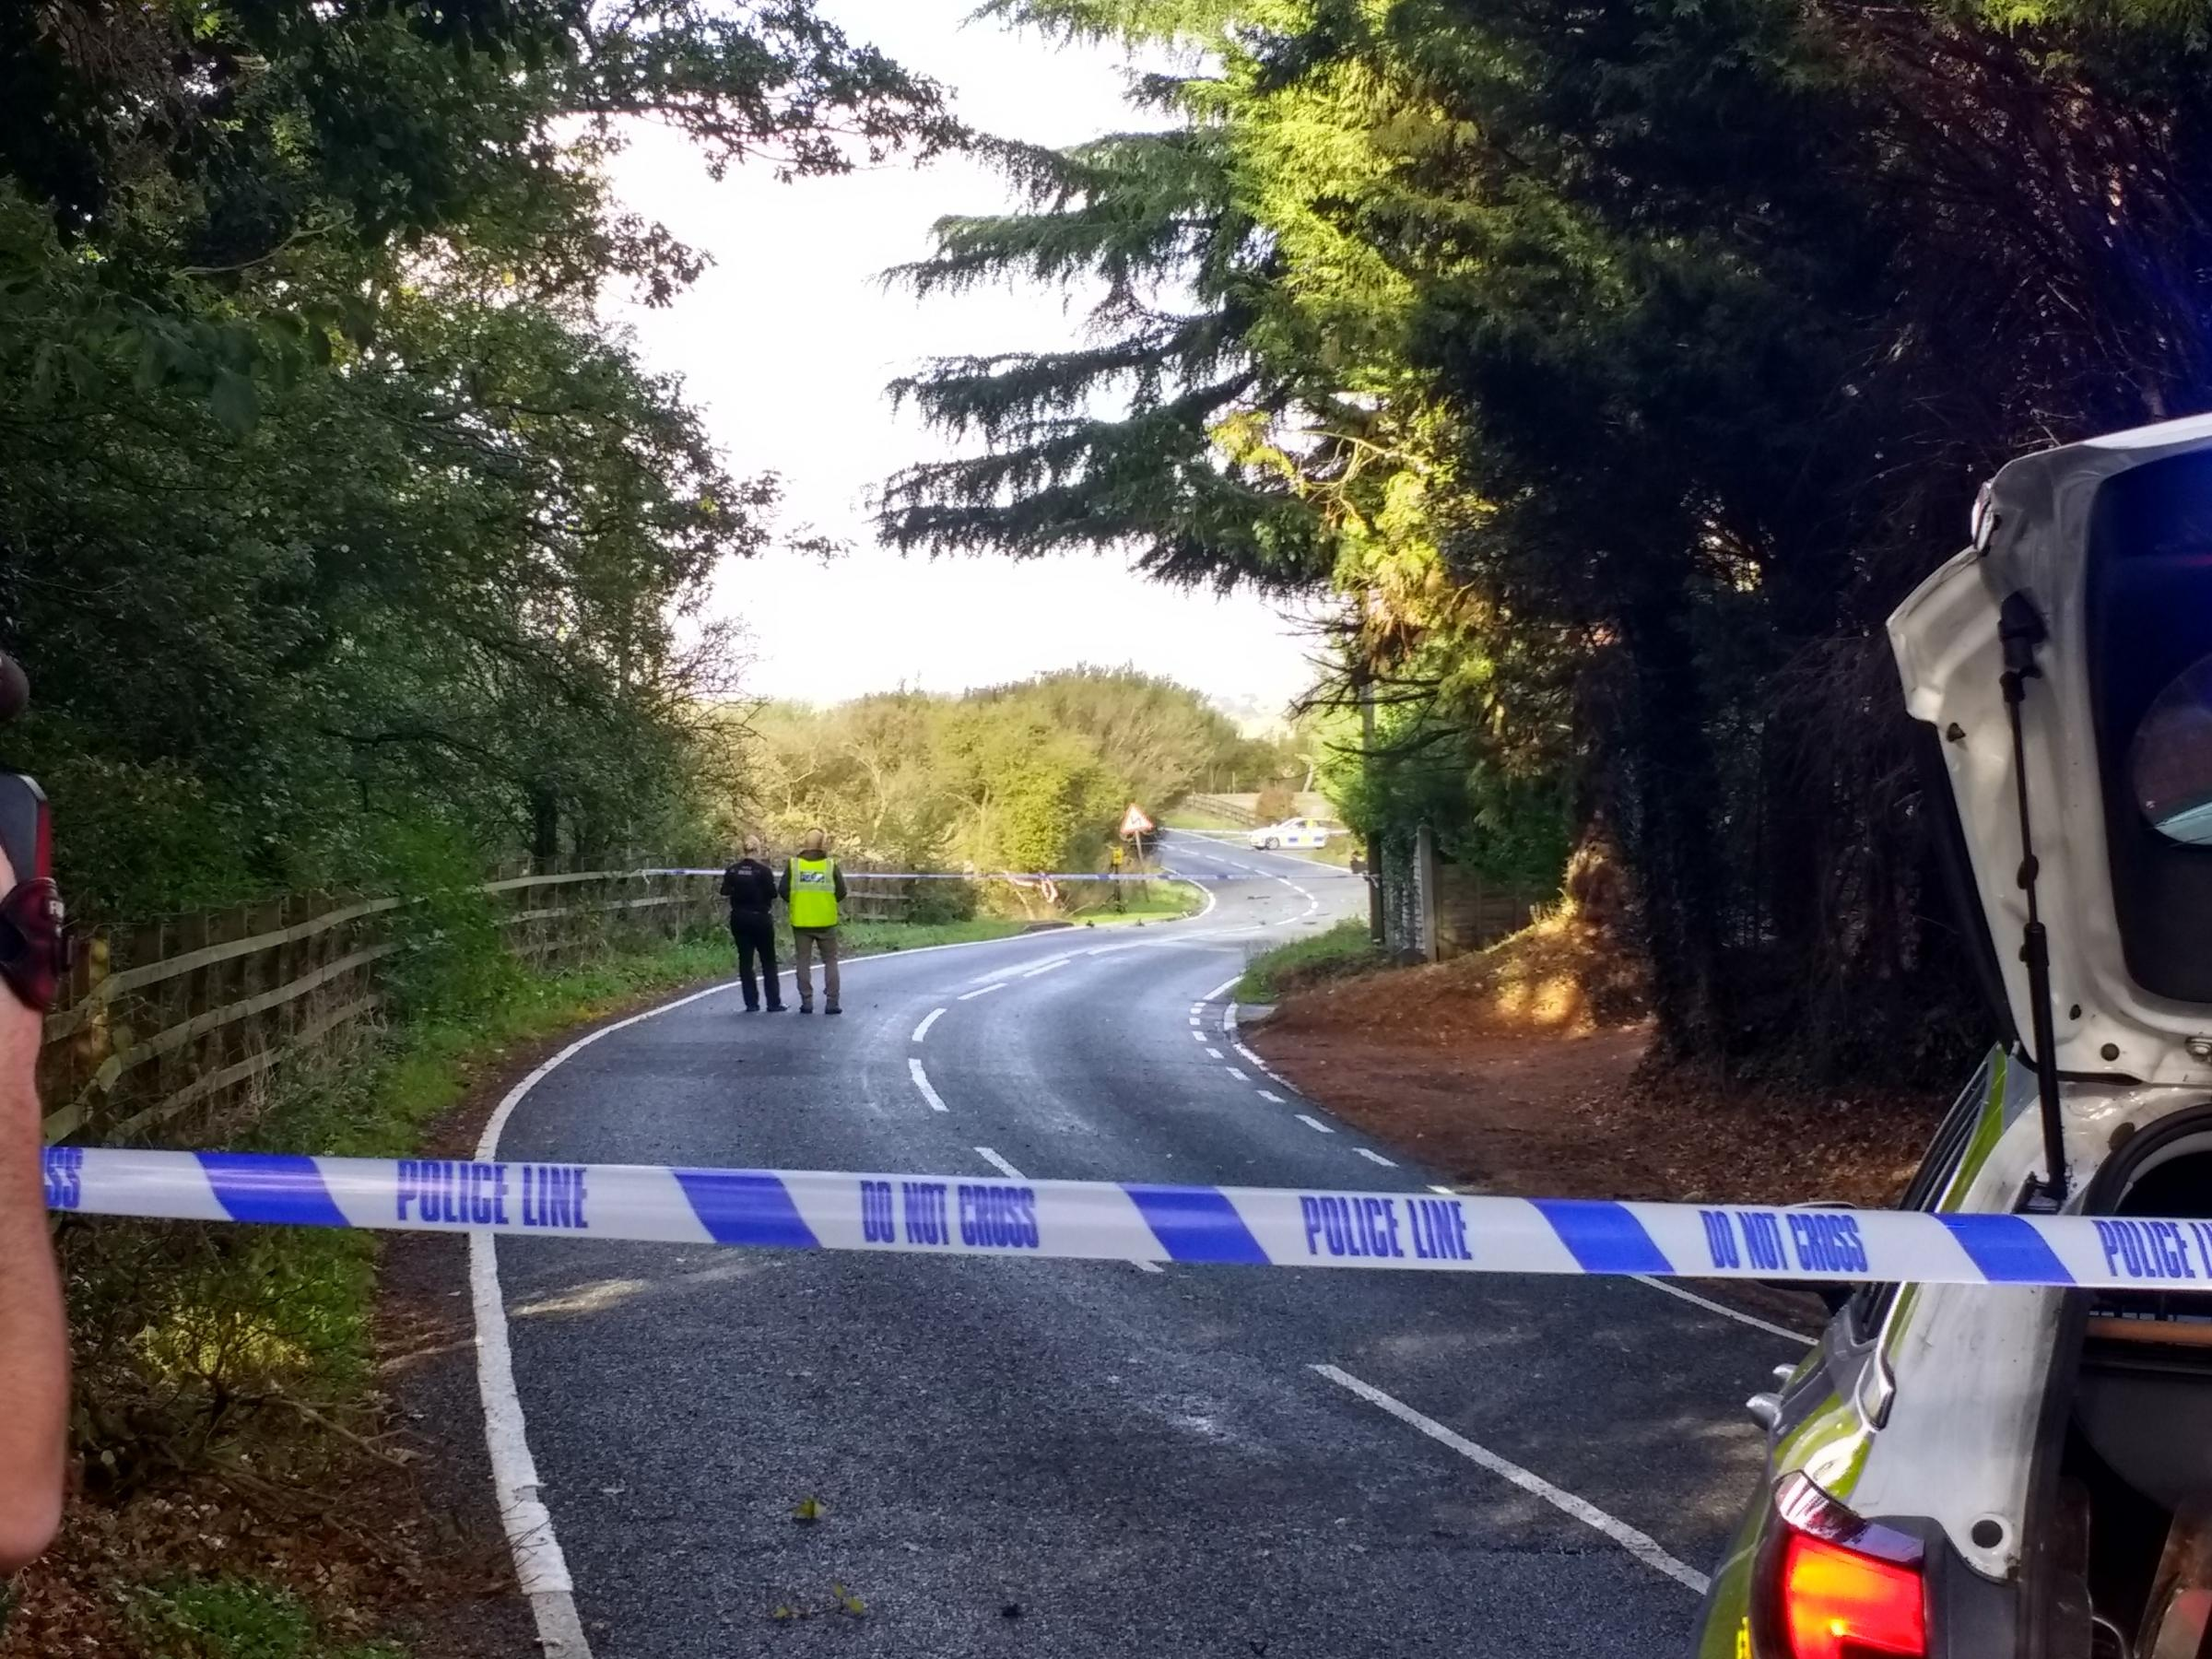 Fatal crash in Blue Mills Hill, Wickham Bishops